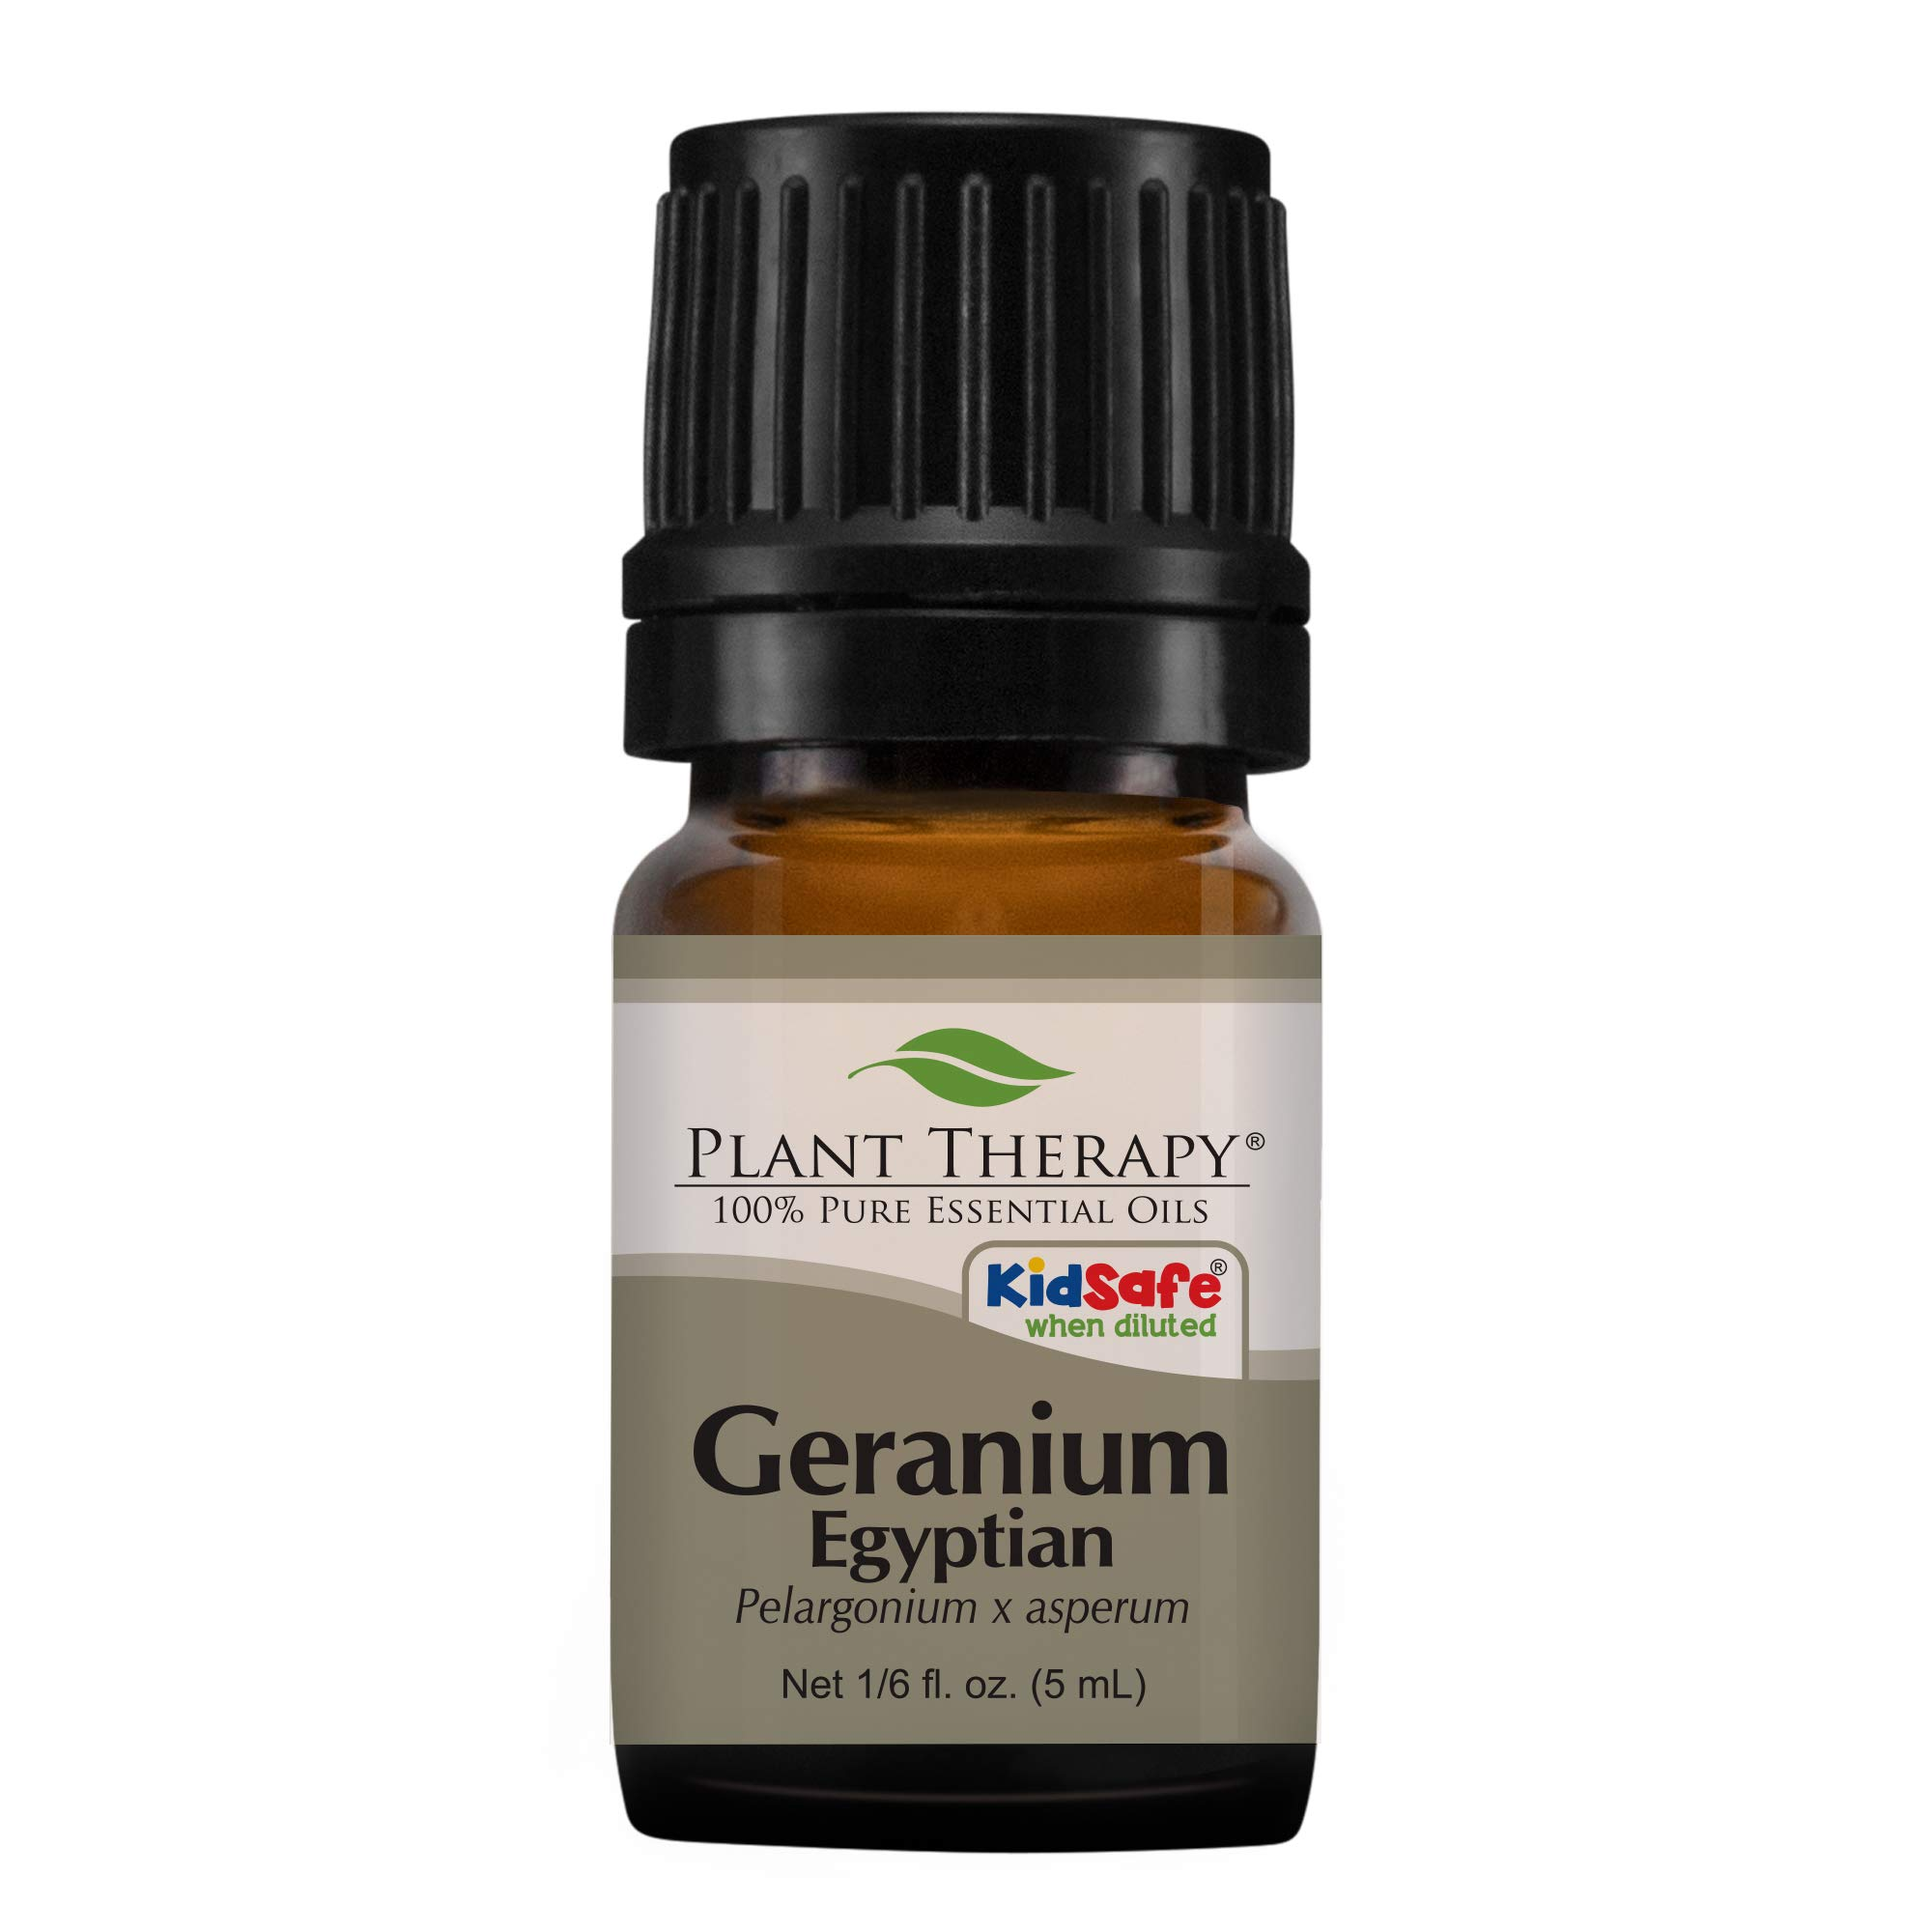 Plant Therapy Geranium Egyptian Essential Oil | 100% Pure, Undiluted, Natural Aromatherapy, Therapeutic Grade | 5 milliliter (1/6 ounce)